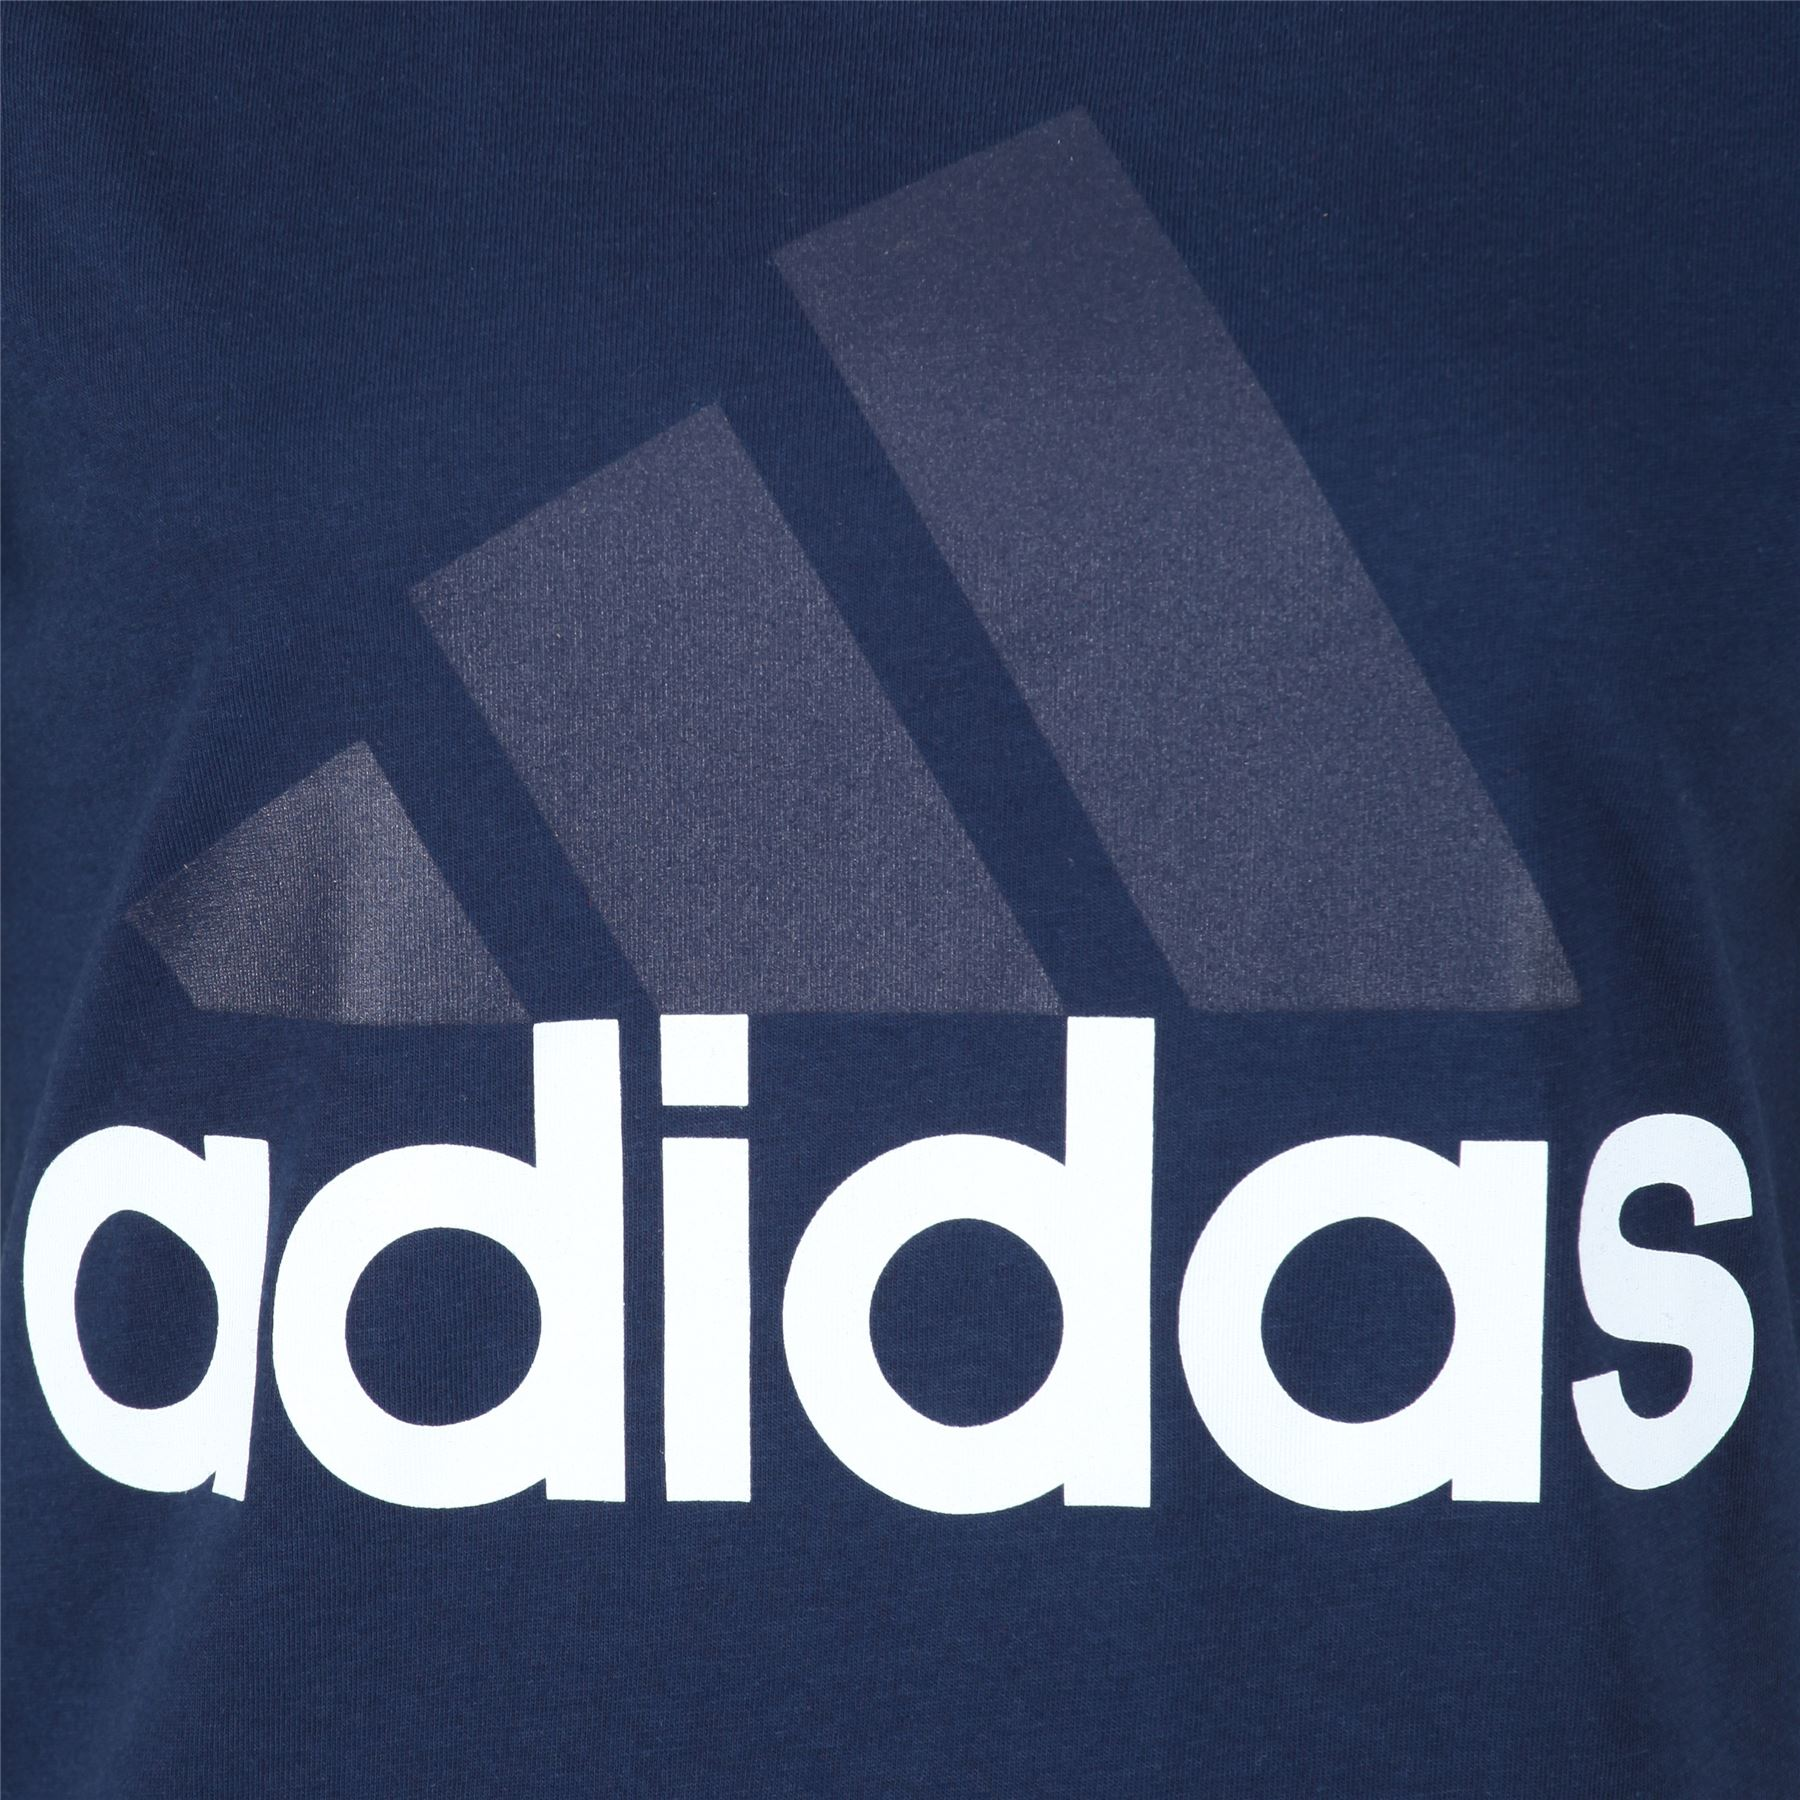 adidas-WOMEN-039-S-ESSENTIALS-LINEAR-T-SHIRT-GYM-BLACK-PINK-WHITE-NAVY-GIRLS-LADIES thumbnail 16